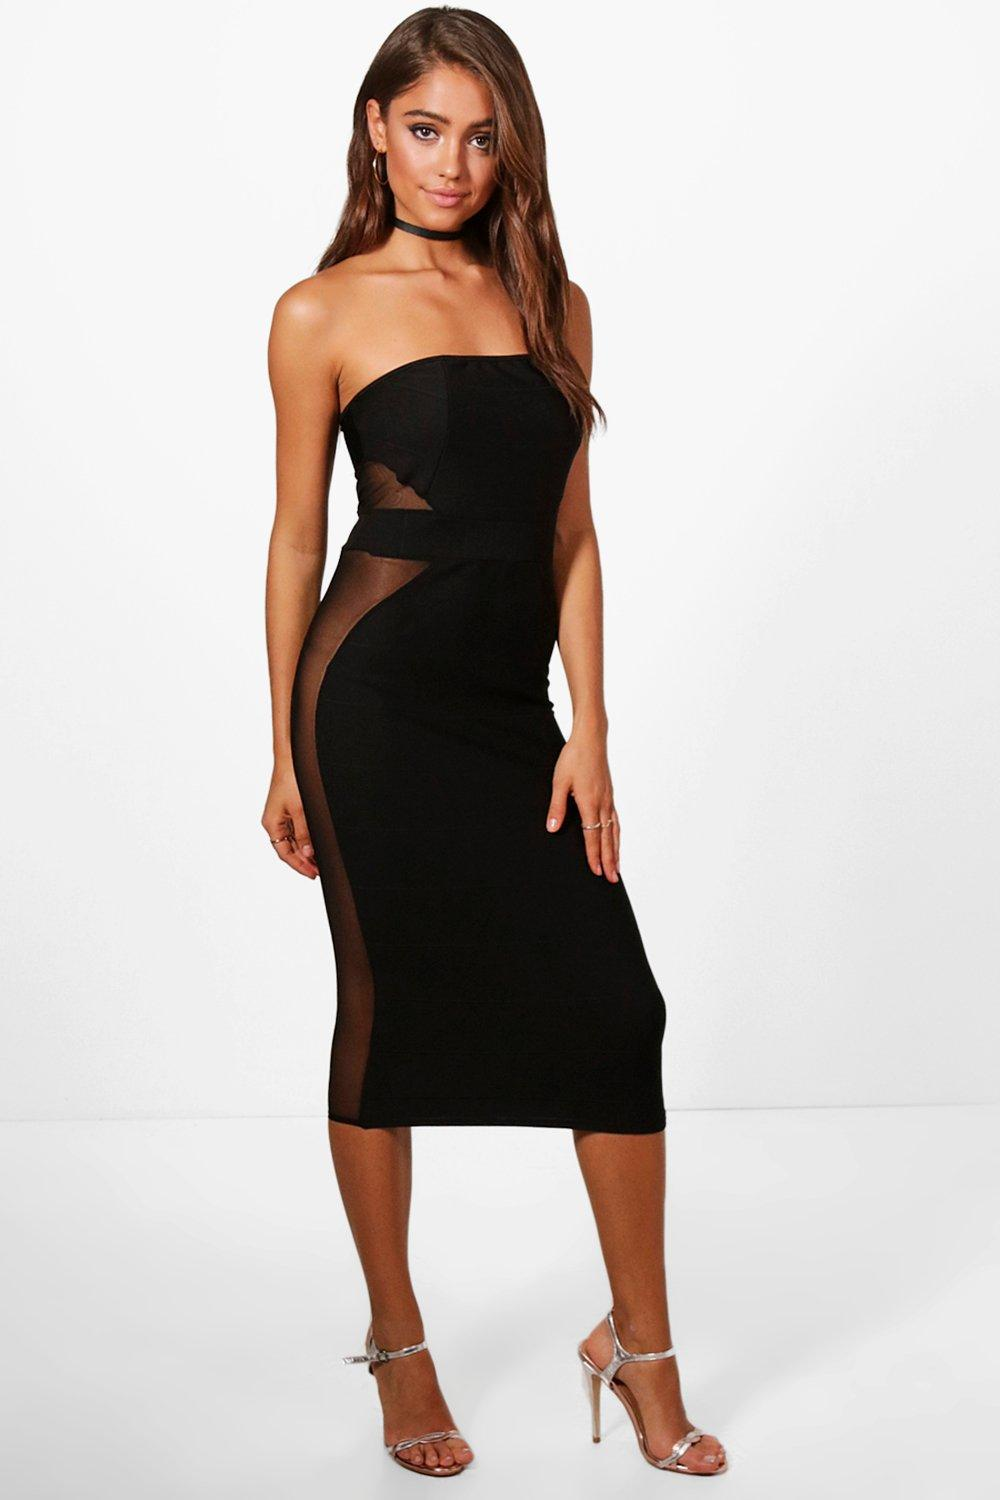 c2ddd2b8aa04 Gallery. Previously sold at: Boohoo · Women's Bandeau Dresses ...